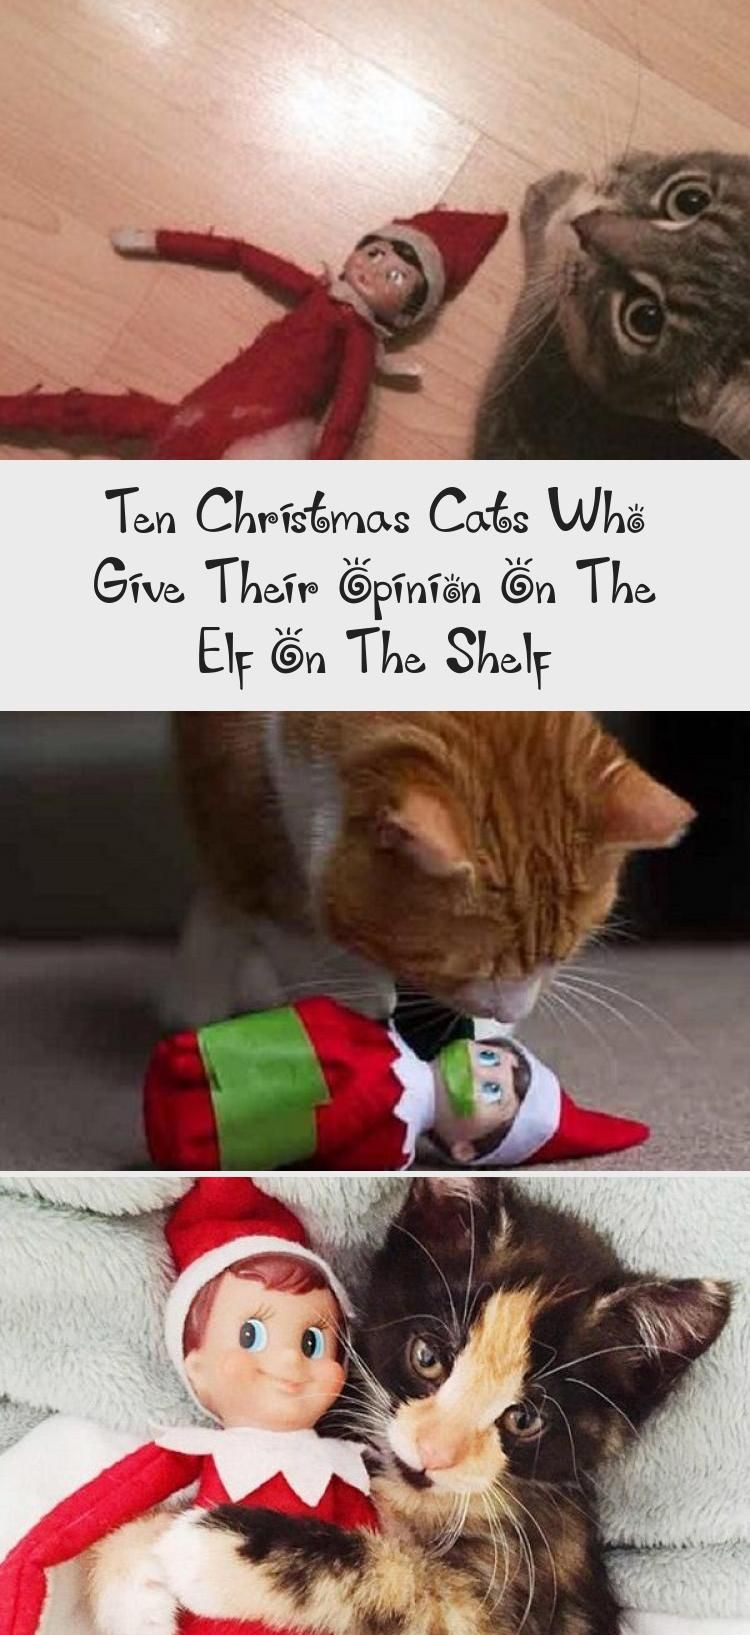 Ten Christmas Cats Who Give Their Opinion On The Elf On The Shelf Christmas Cats Elf Black Cat Humor